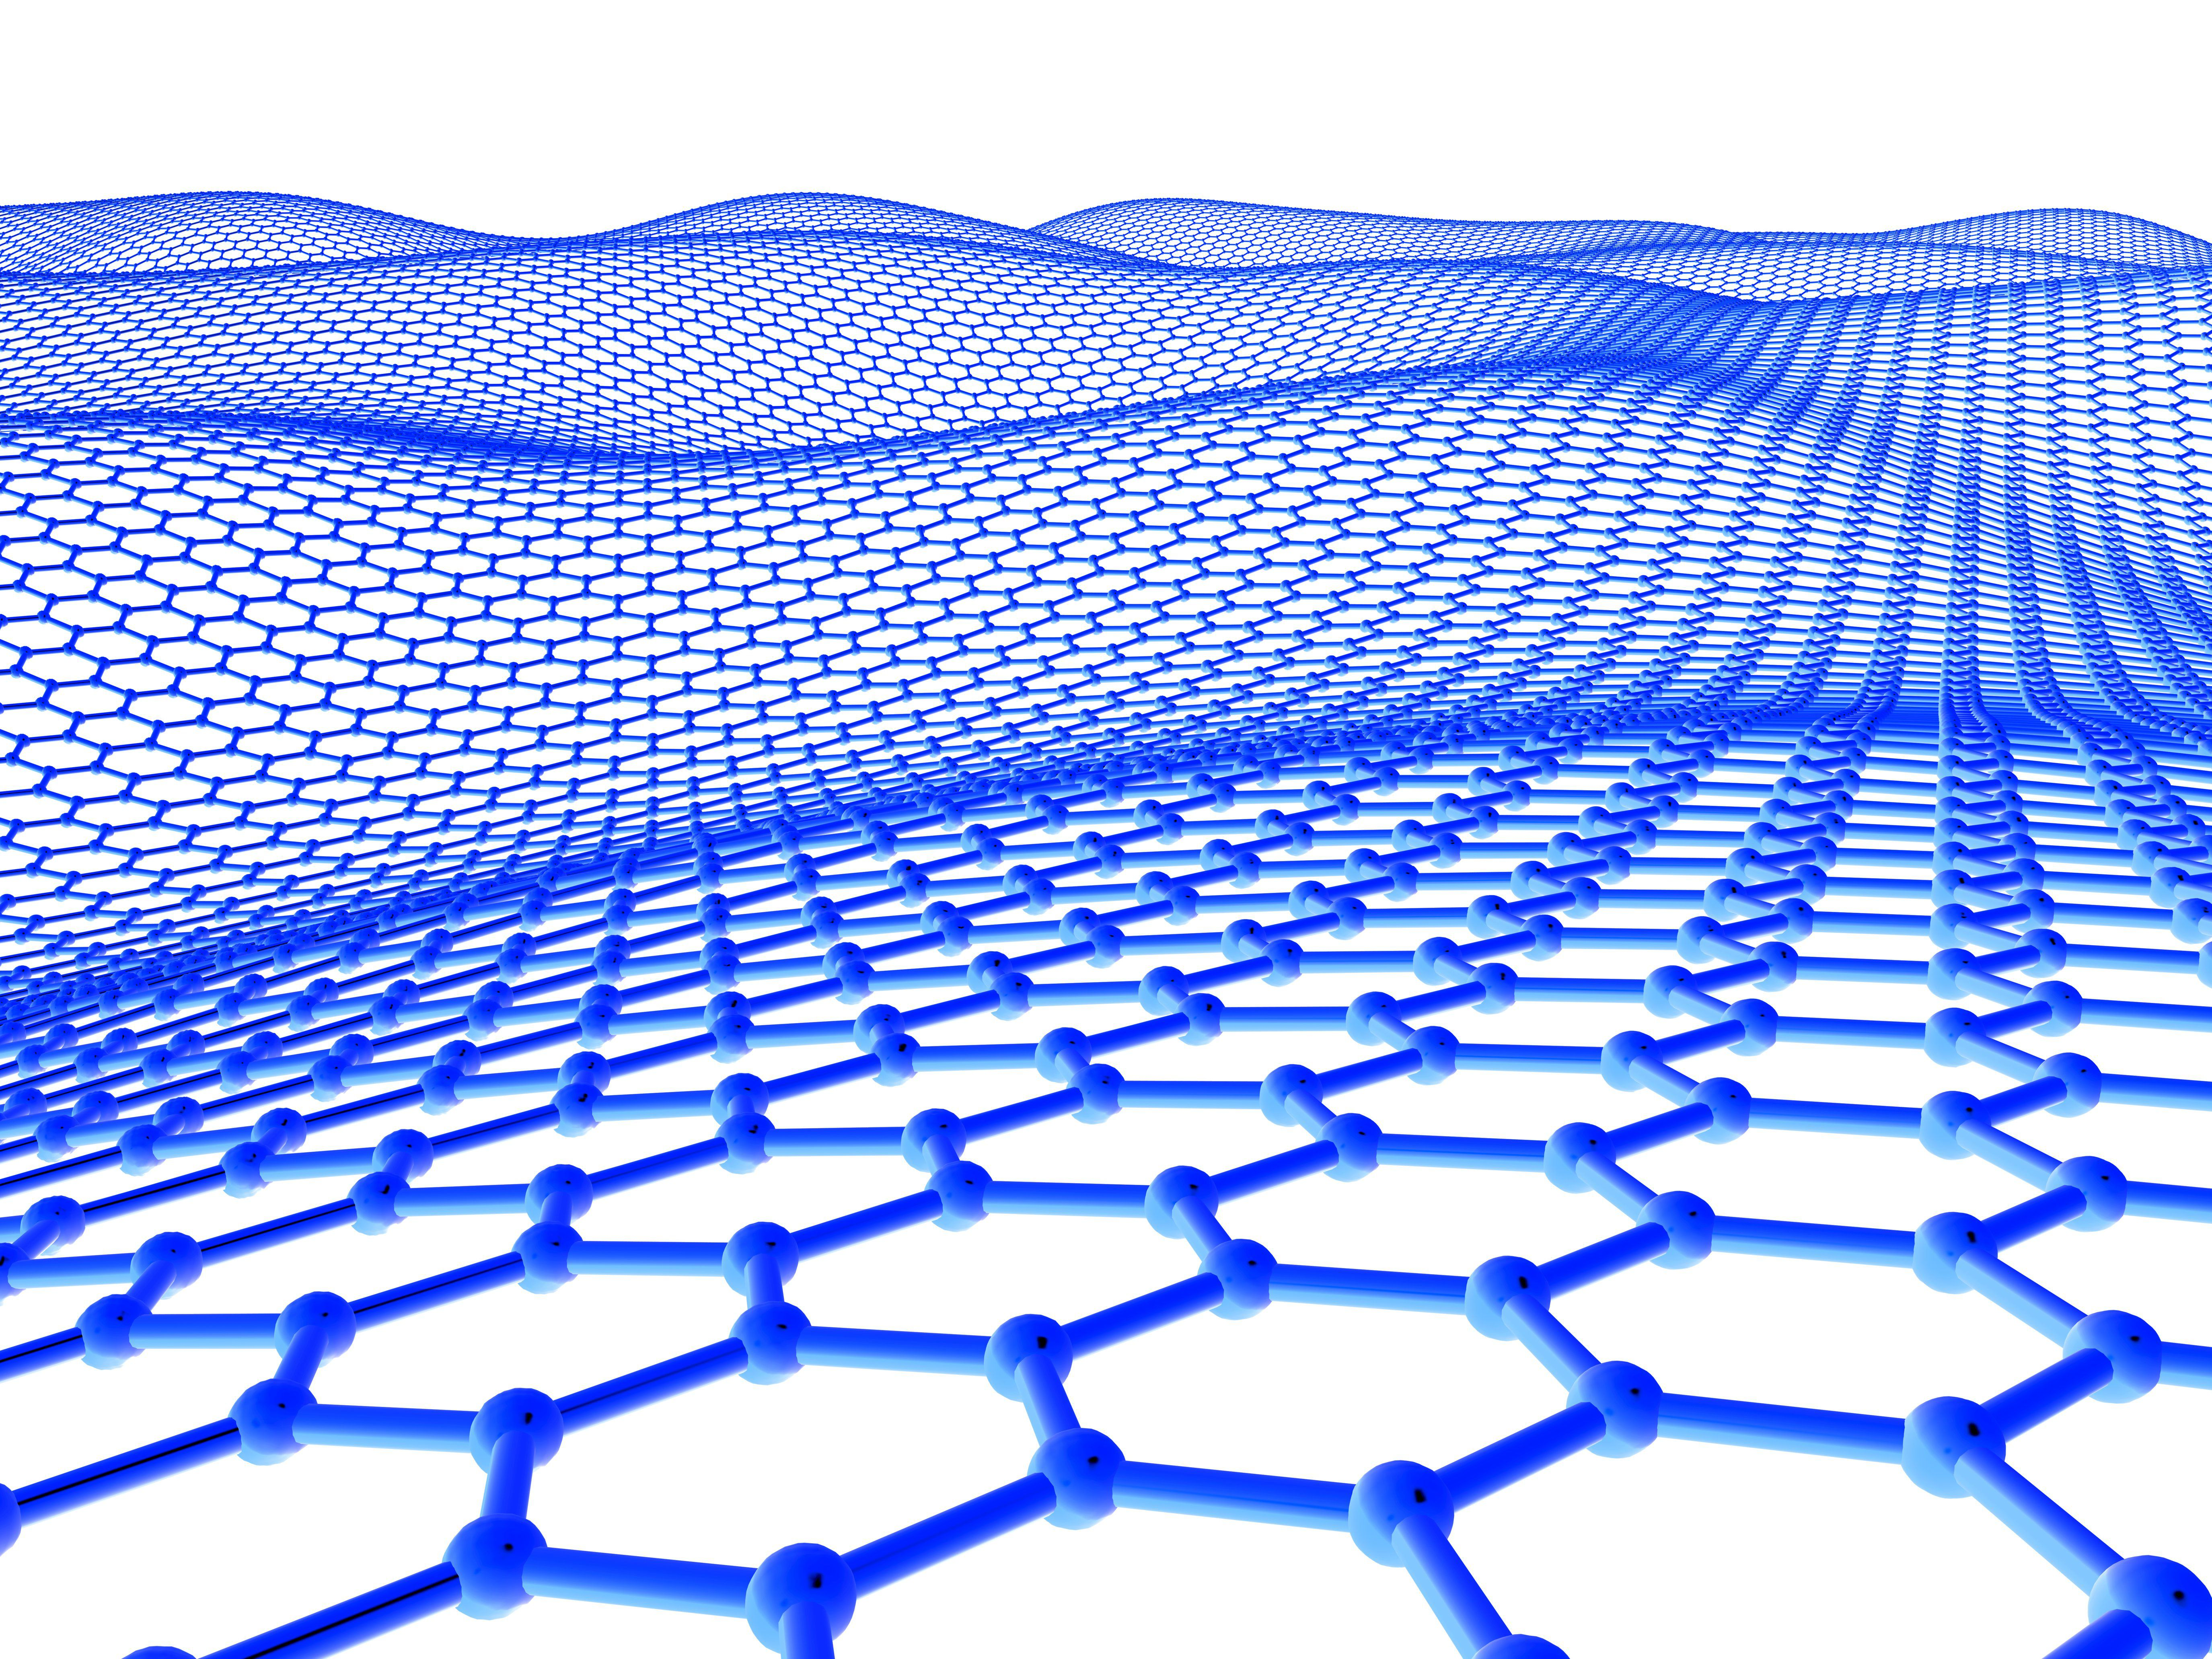 graphene essay Graphene is a single layer of carbon based material bonded in a honeycomb lattice looking at the big picture, it is strange to think that carbon, the sixth most abundant element on earth, is viewed as the next wonder material.